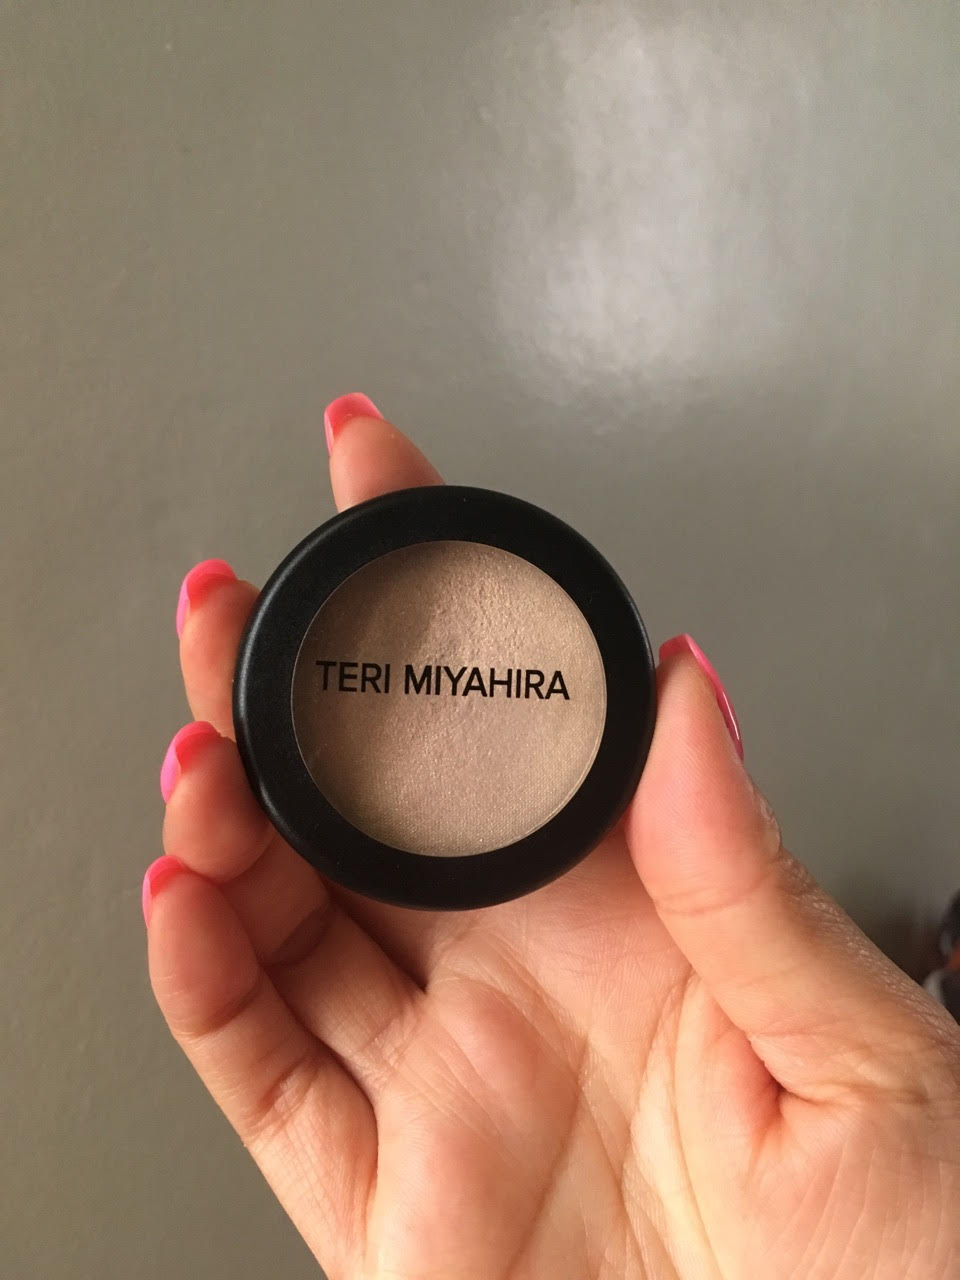 Teri miyahira lucky illuminating powder